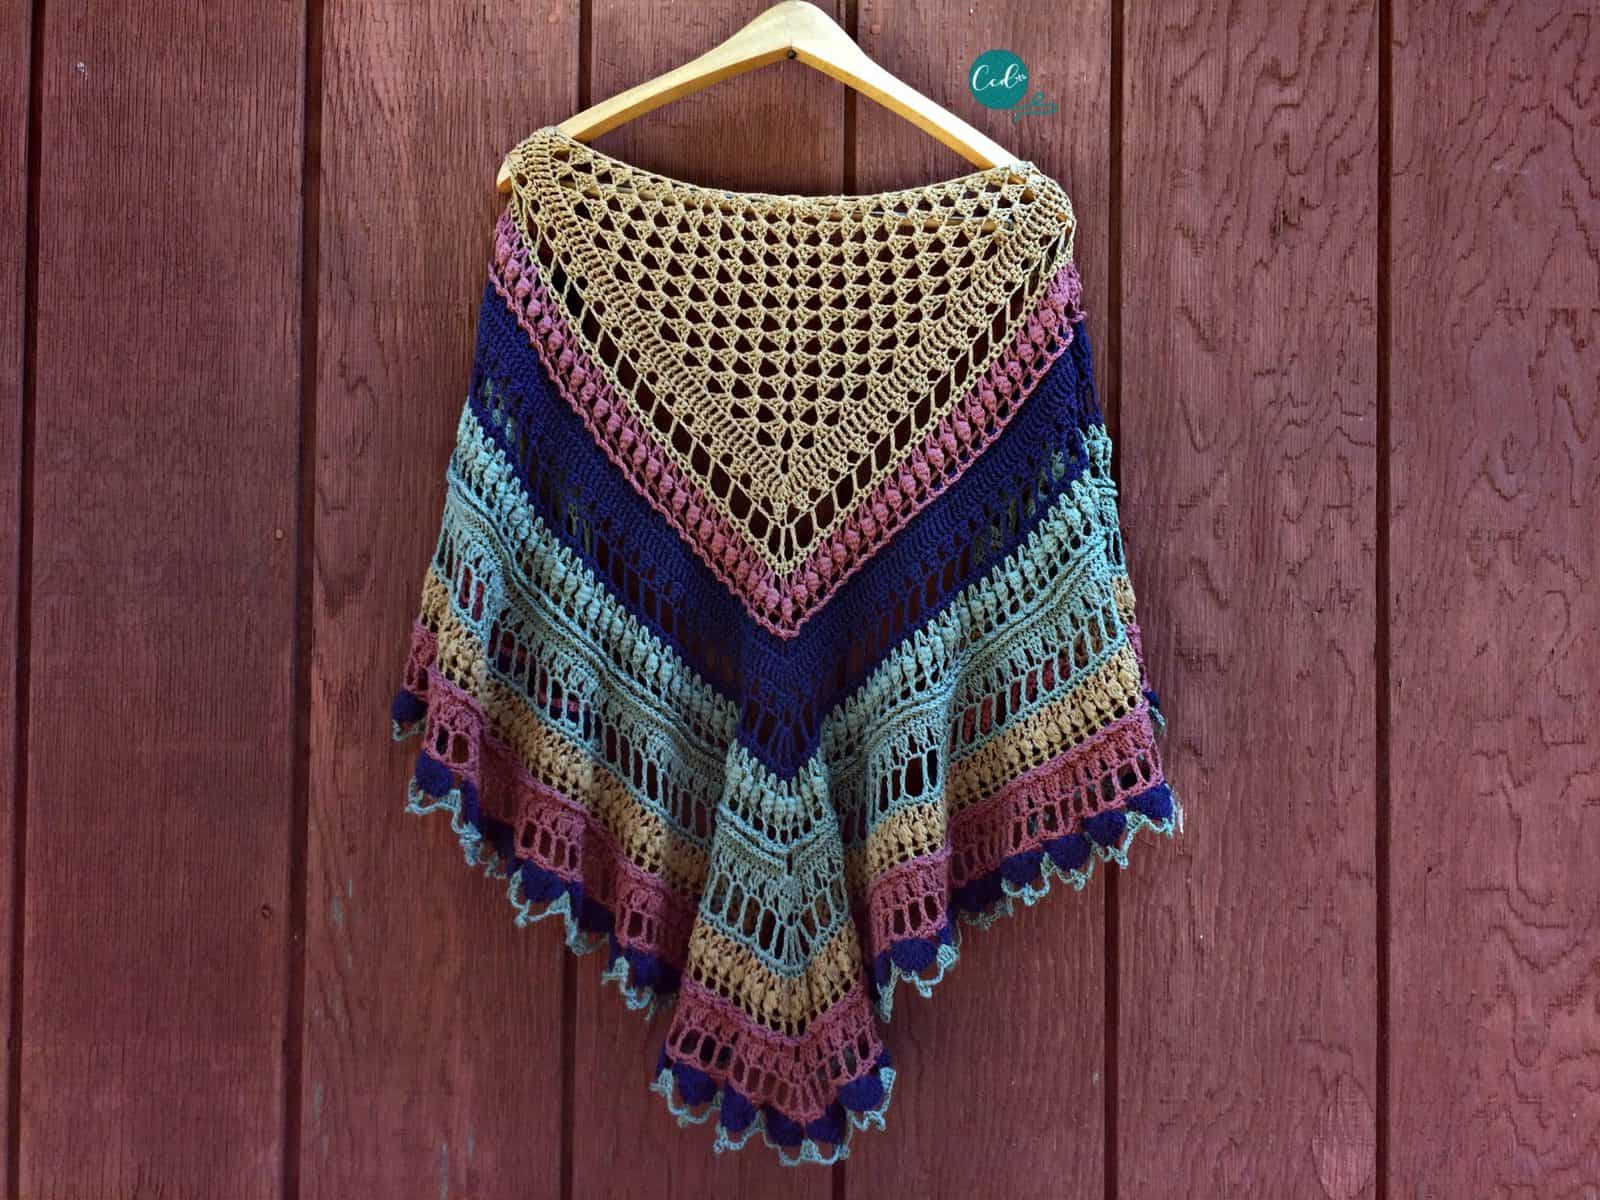 Crochet shawlette in browns, blues, greens and pink.